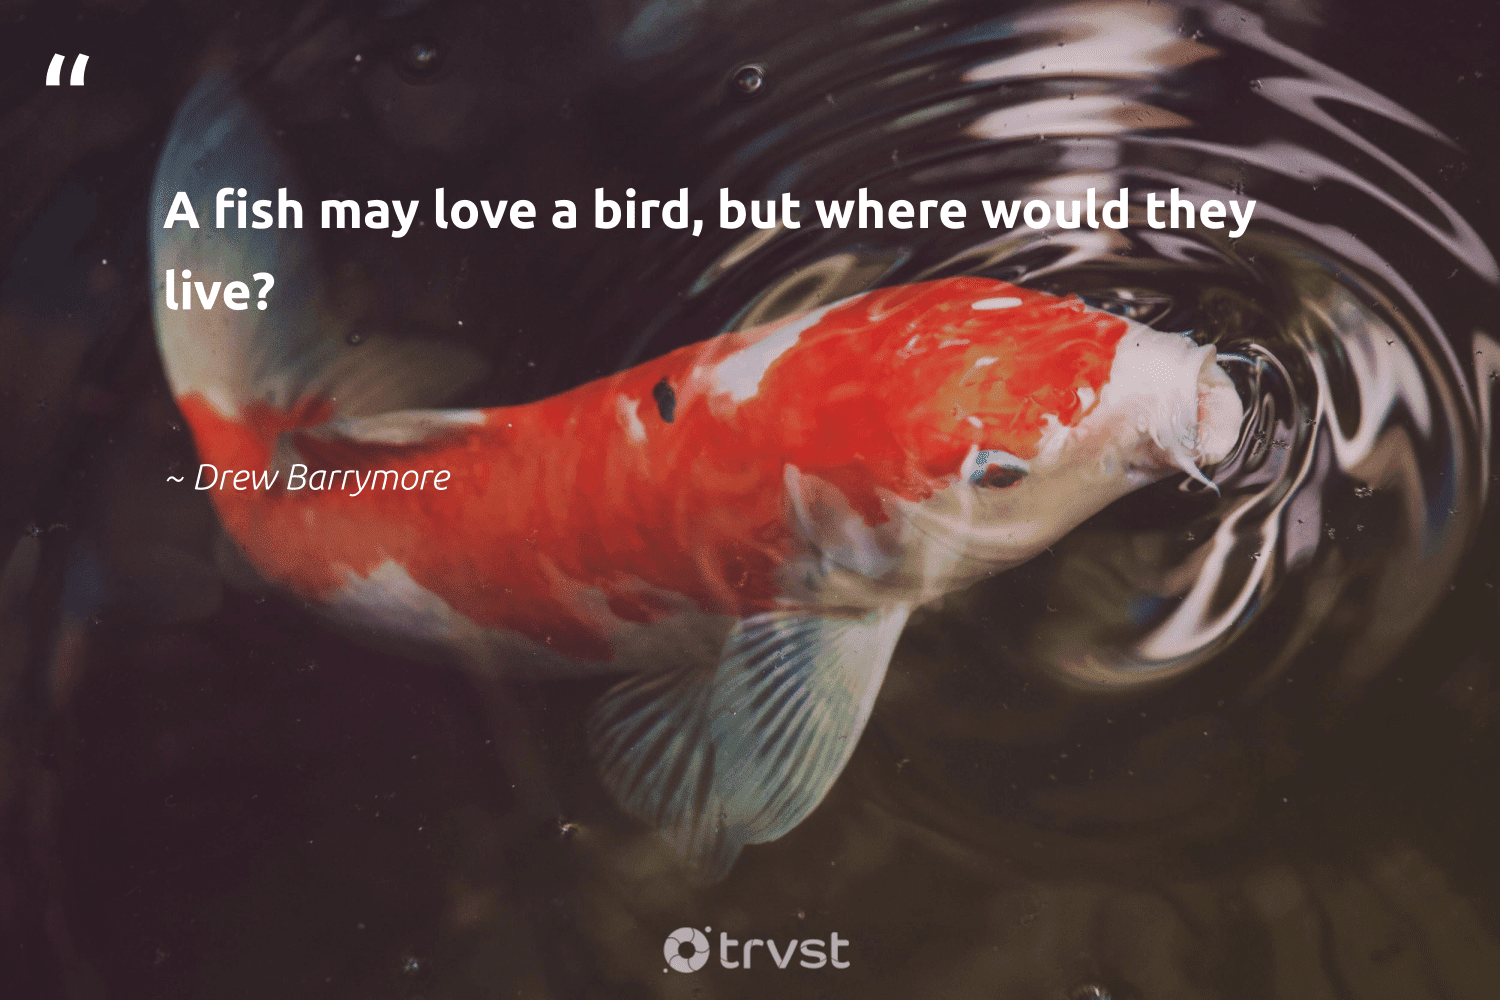 """""""A fish may love a bird, but where would they live?""""  - Drew Barrymore #trvst #quotes #love #fish #bird #birds #savetheoceans #geology #bethechange #protecttheoceans #natural #thinkgreen"""